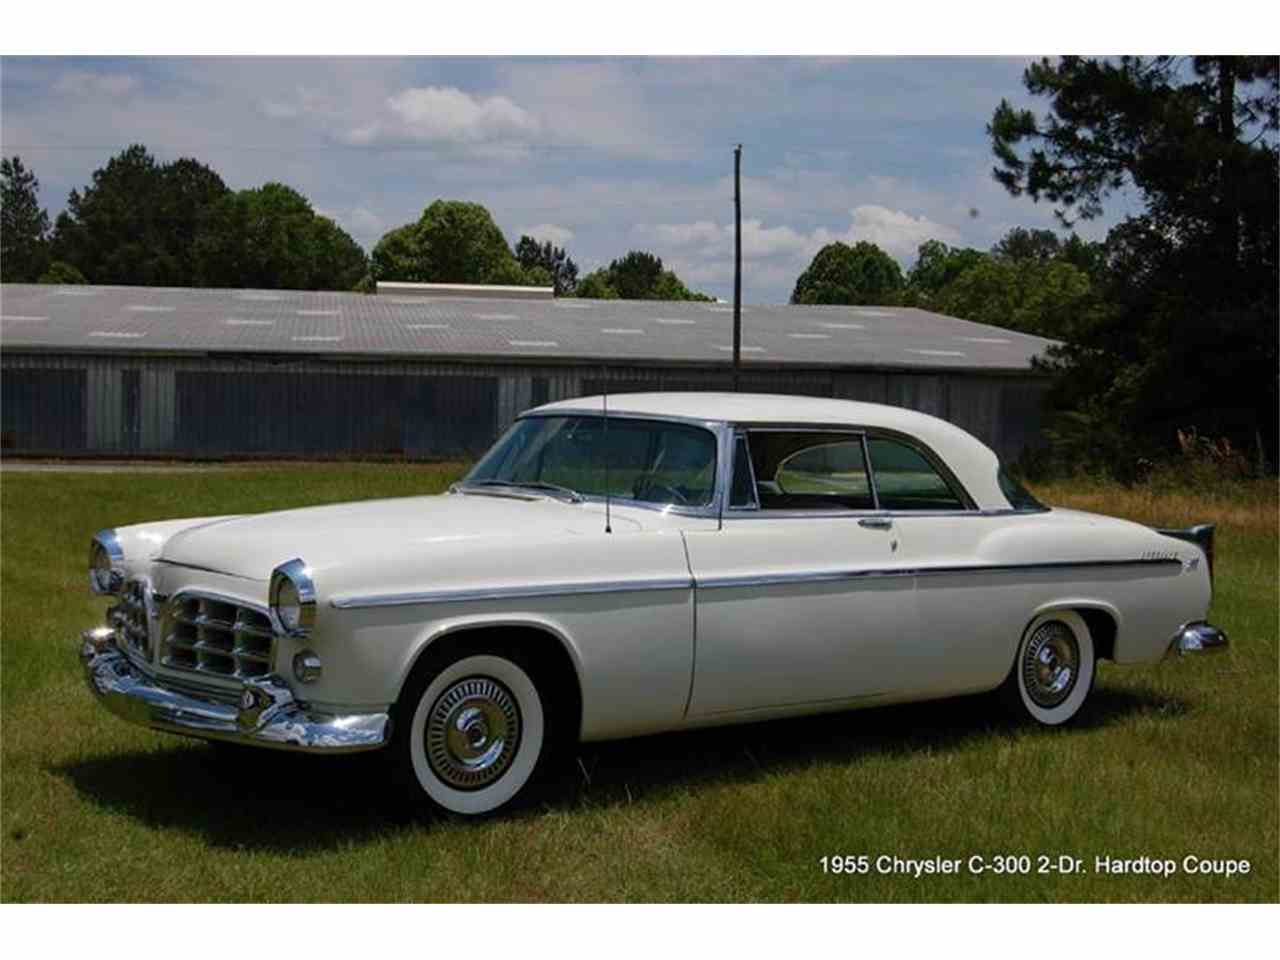 Chrysler 300 Letter Series I (C-300) 1955 - 1955 Coupe-Hardtop #4